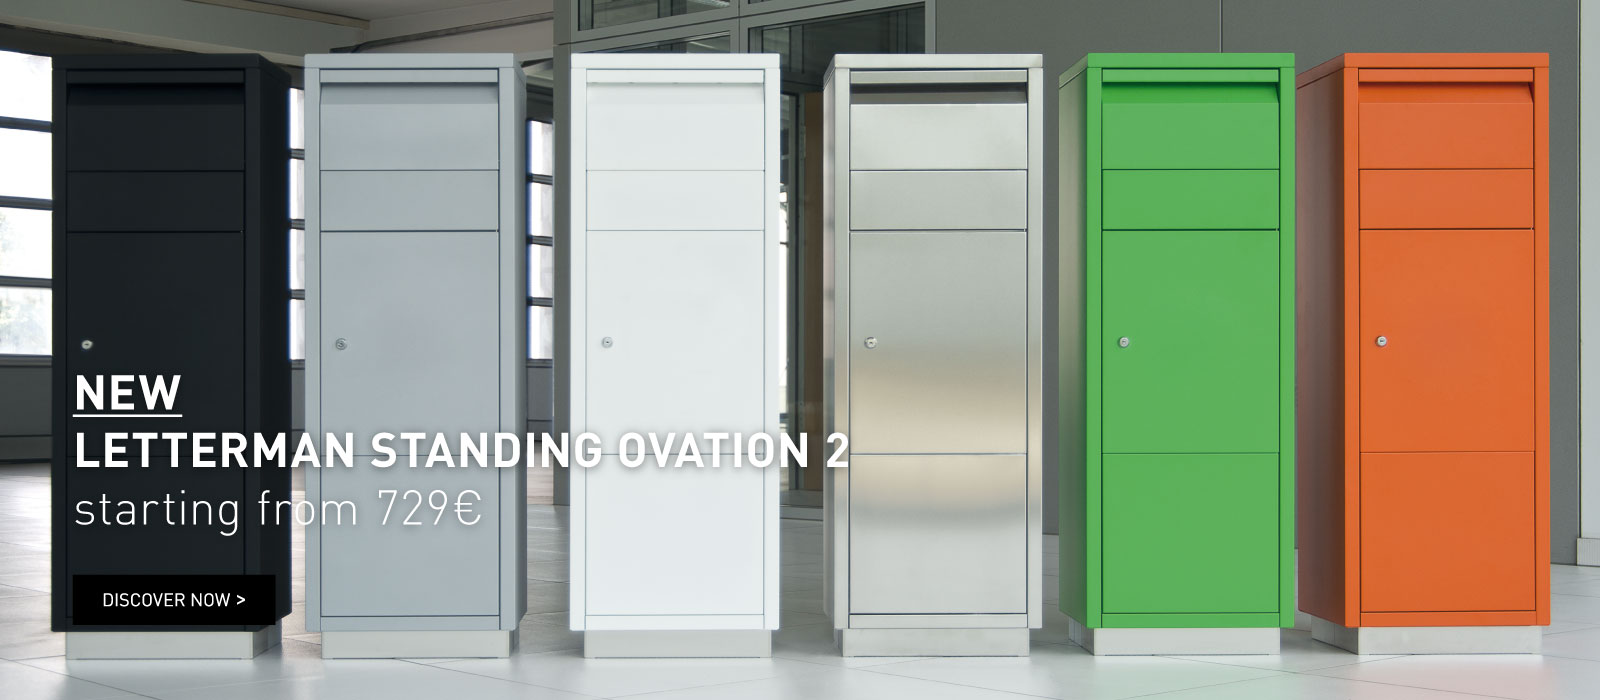 Package box LETTERMAN STANDING OVATION 2| starting from 729 €